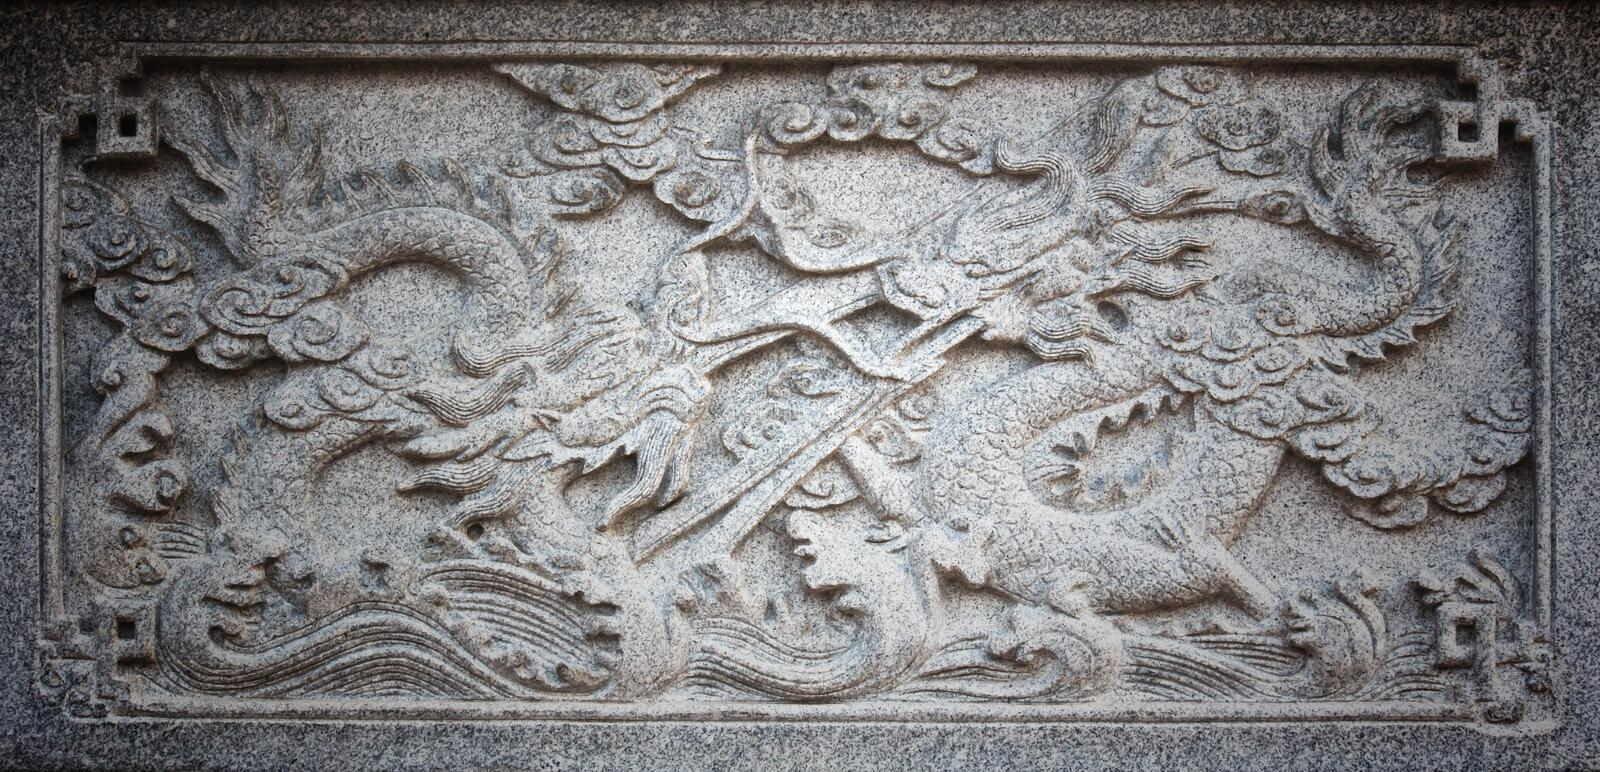 Dragon stone carving stock photo image of architecture